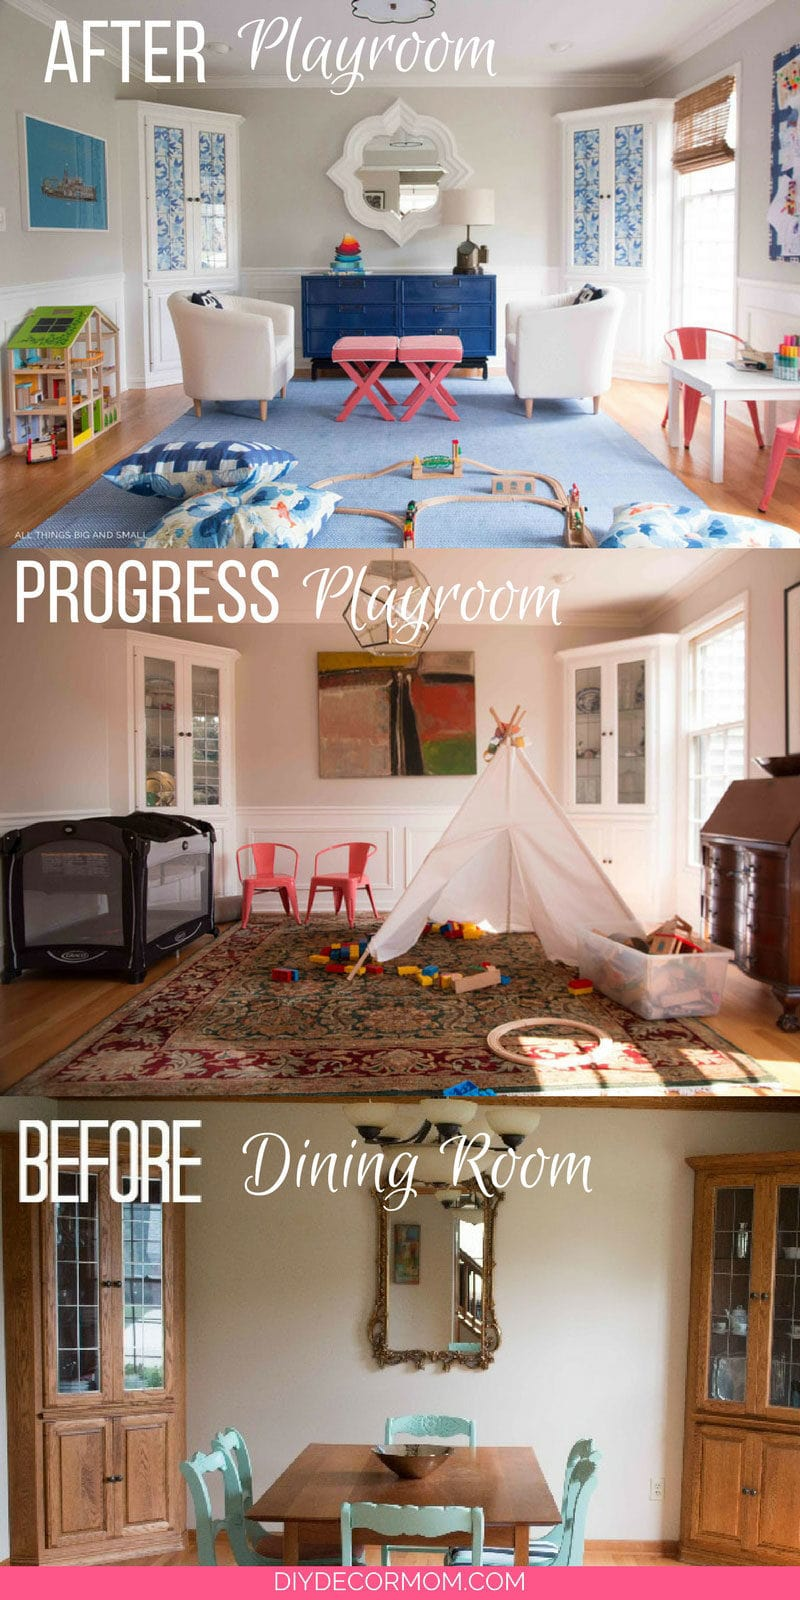 Before and After Playroom Decor Makeover ALL DIY - Semi Flush Ceiling Lights by popular home decor blogger DIY Decor Mom